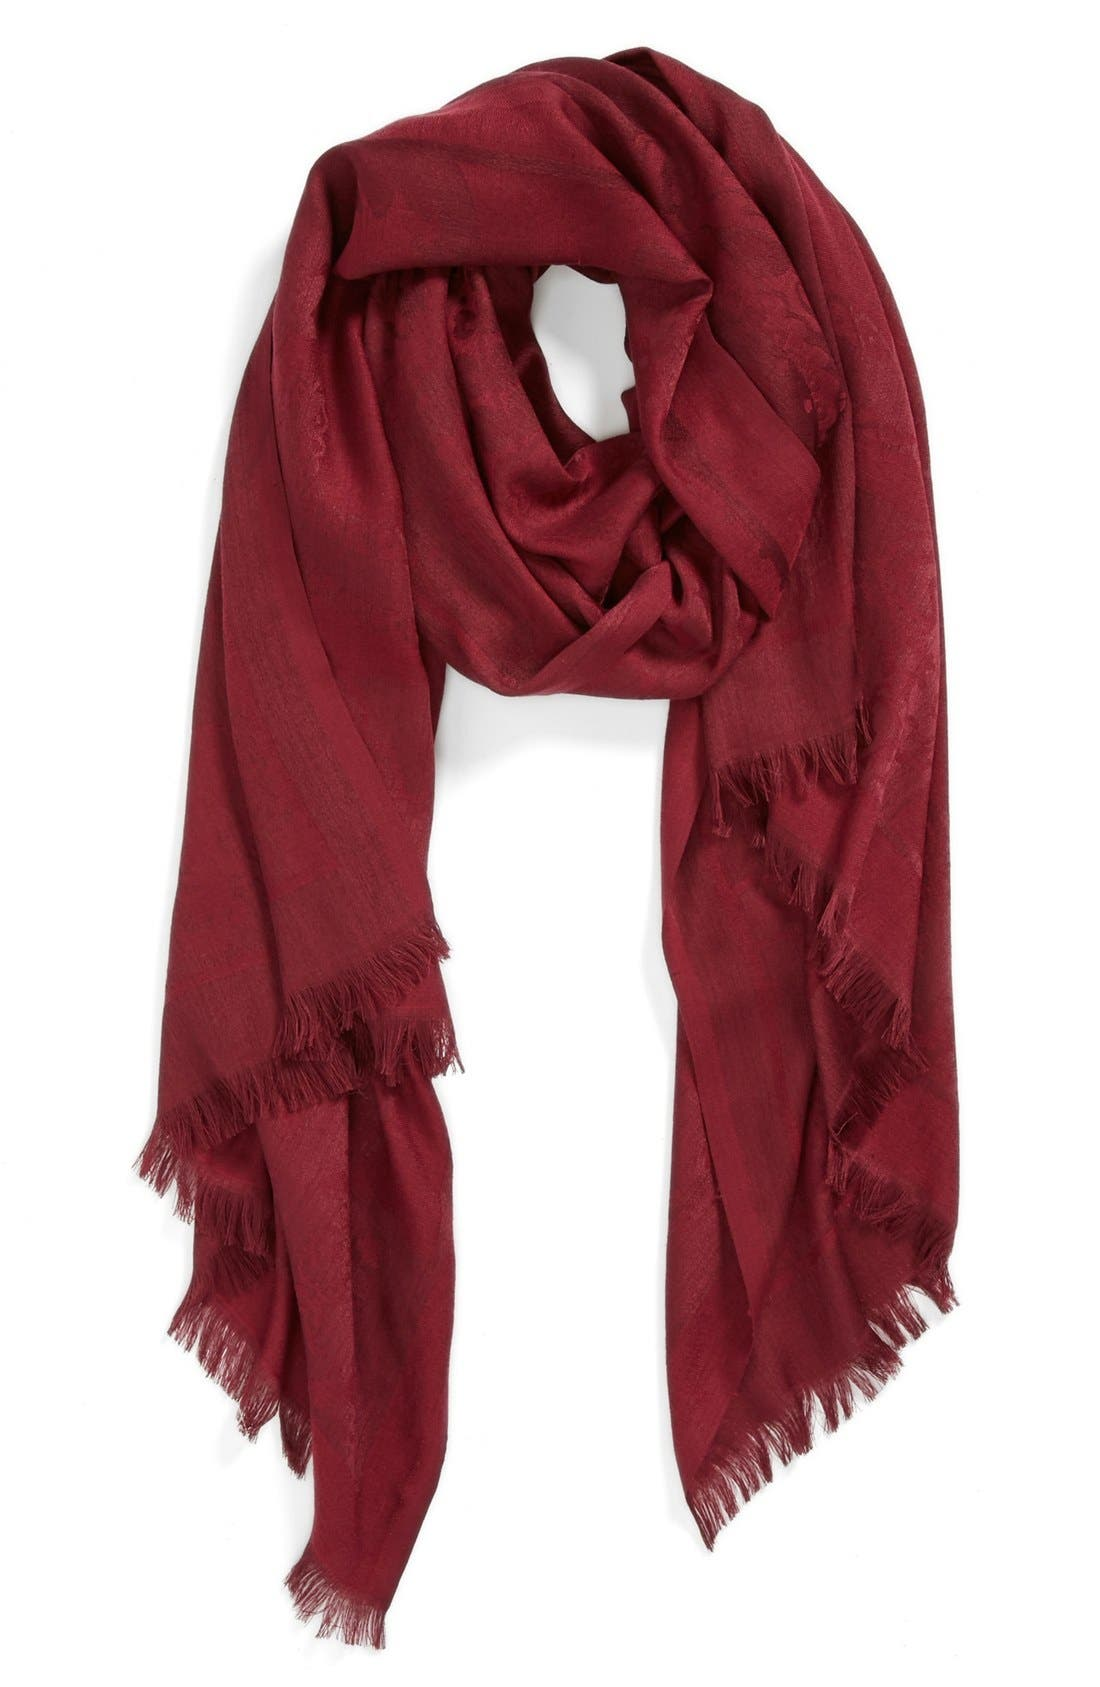 Alternate Image 1 Selected - Vince Camuto Jacquard Scarf